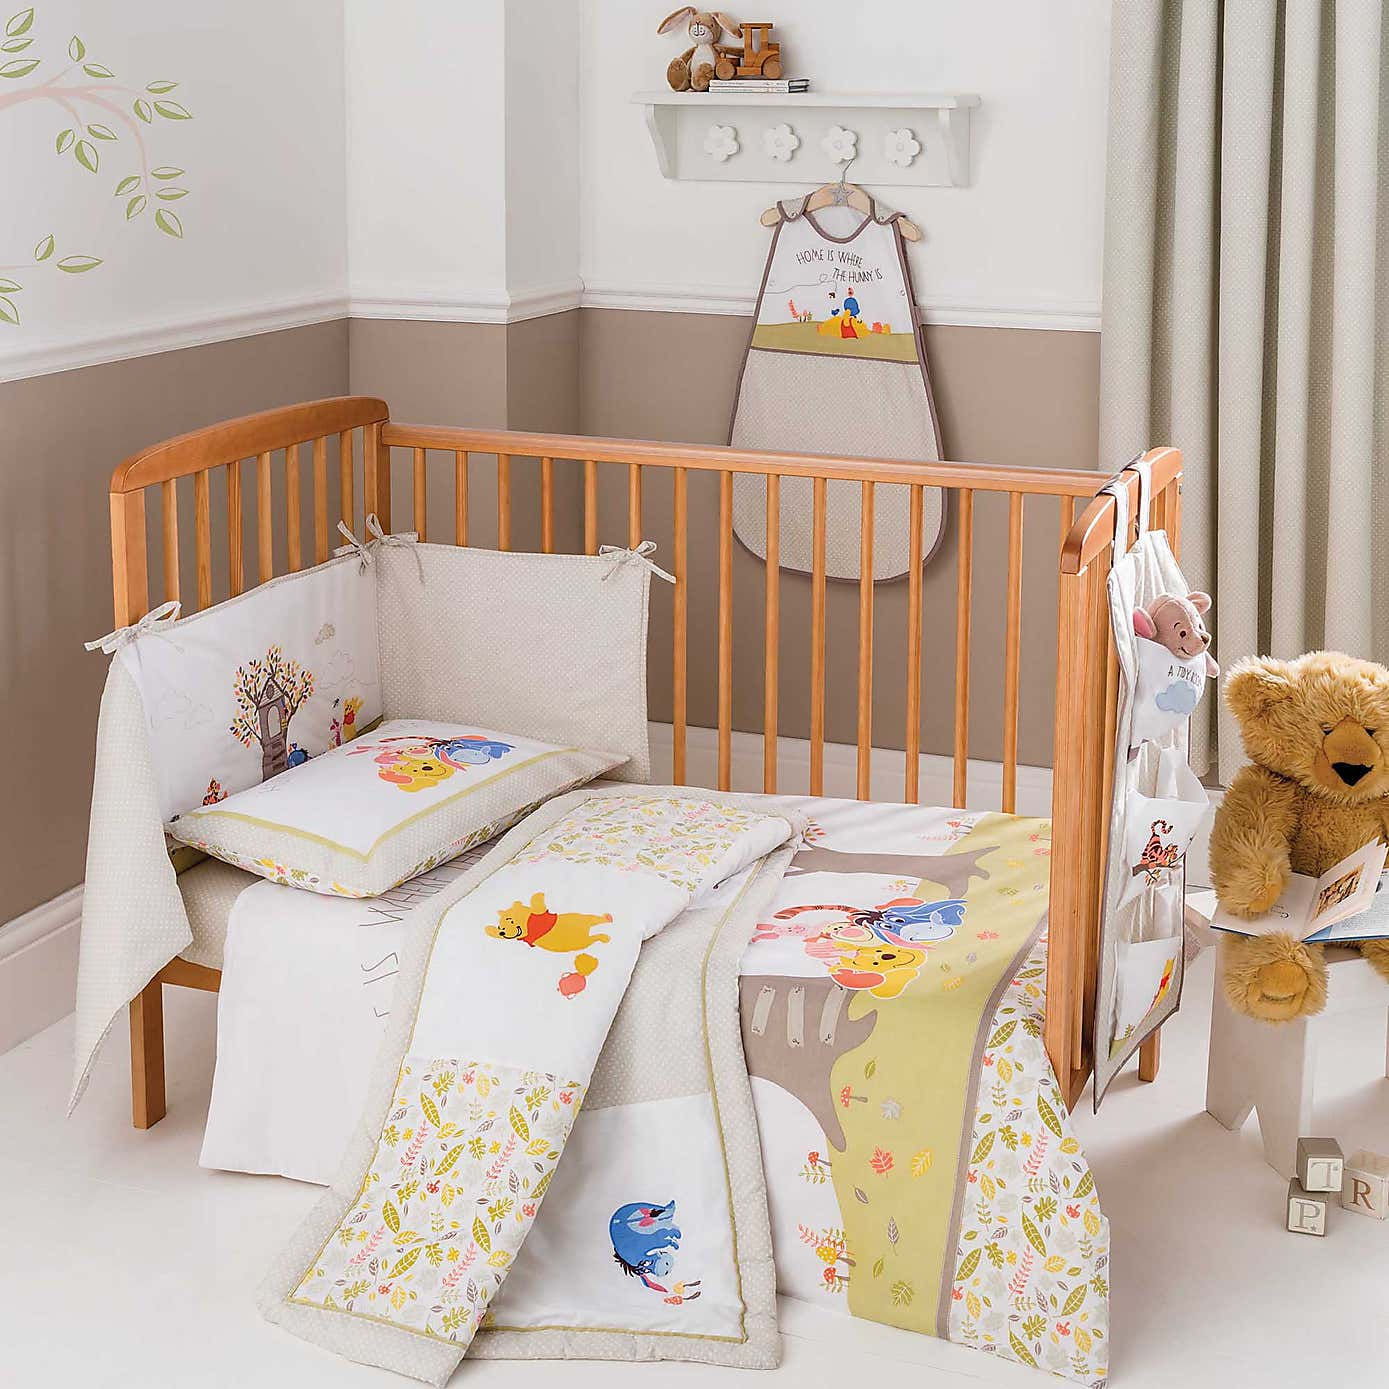 Winnie the pooh toddler bedding - Winnie The Pooh Baby Bedroom Set Bedding Sets Collections Winnie The Pooh Classic Nursery